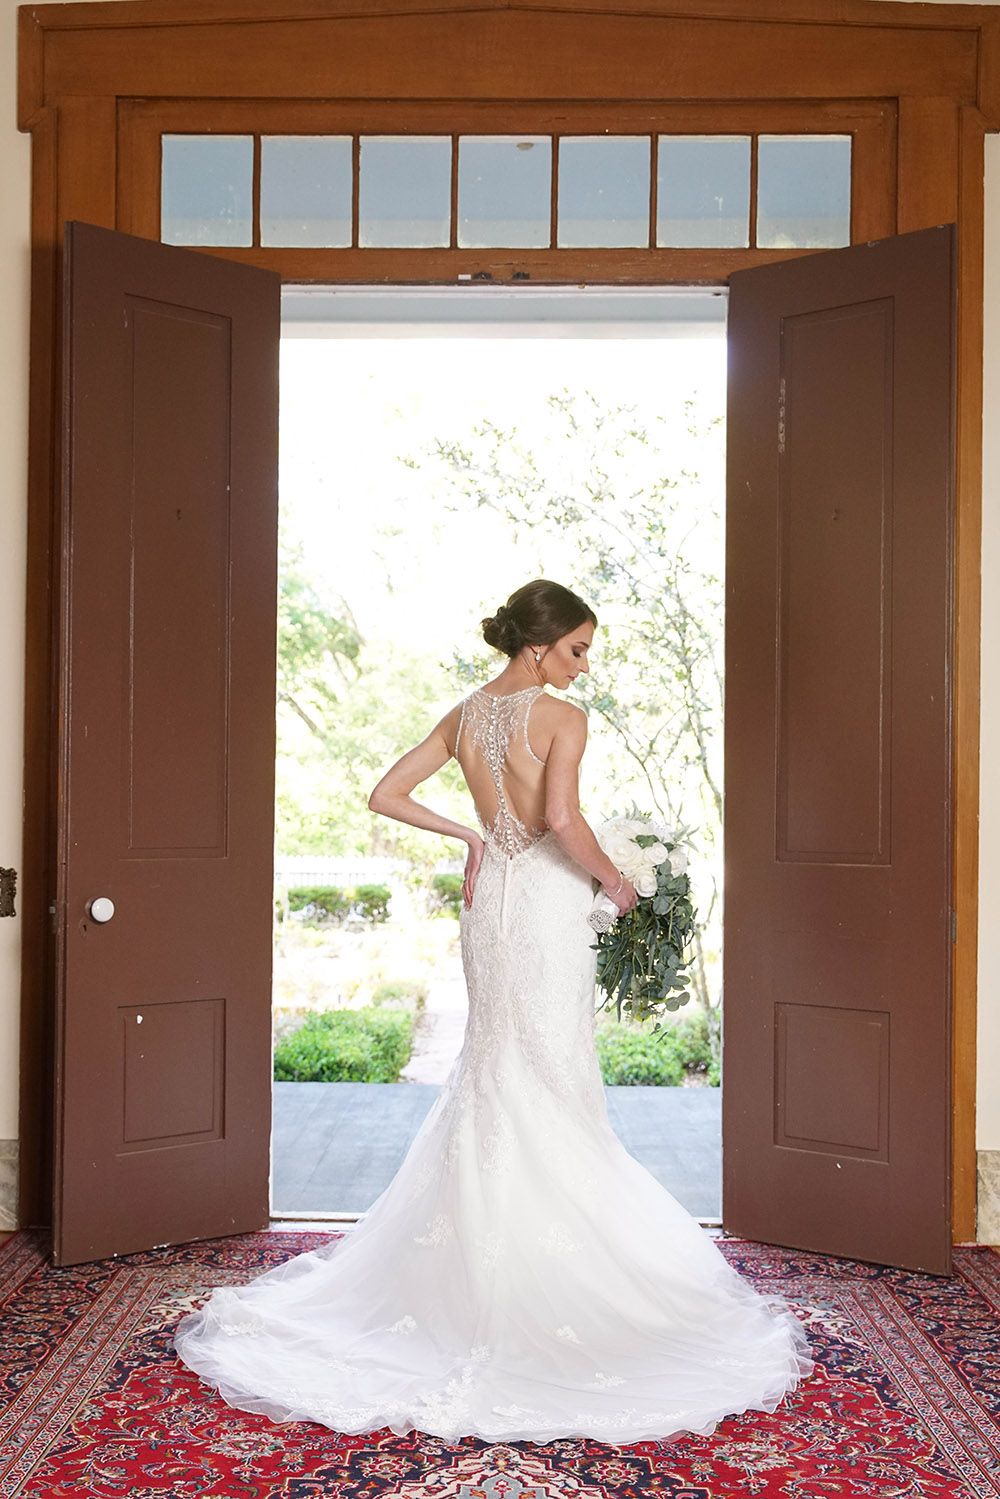 A bridal portrait in the doorway of a home